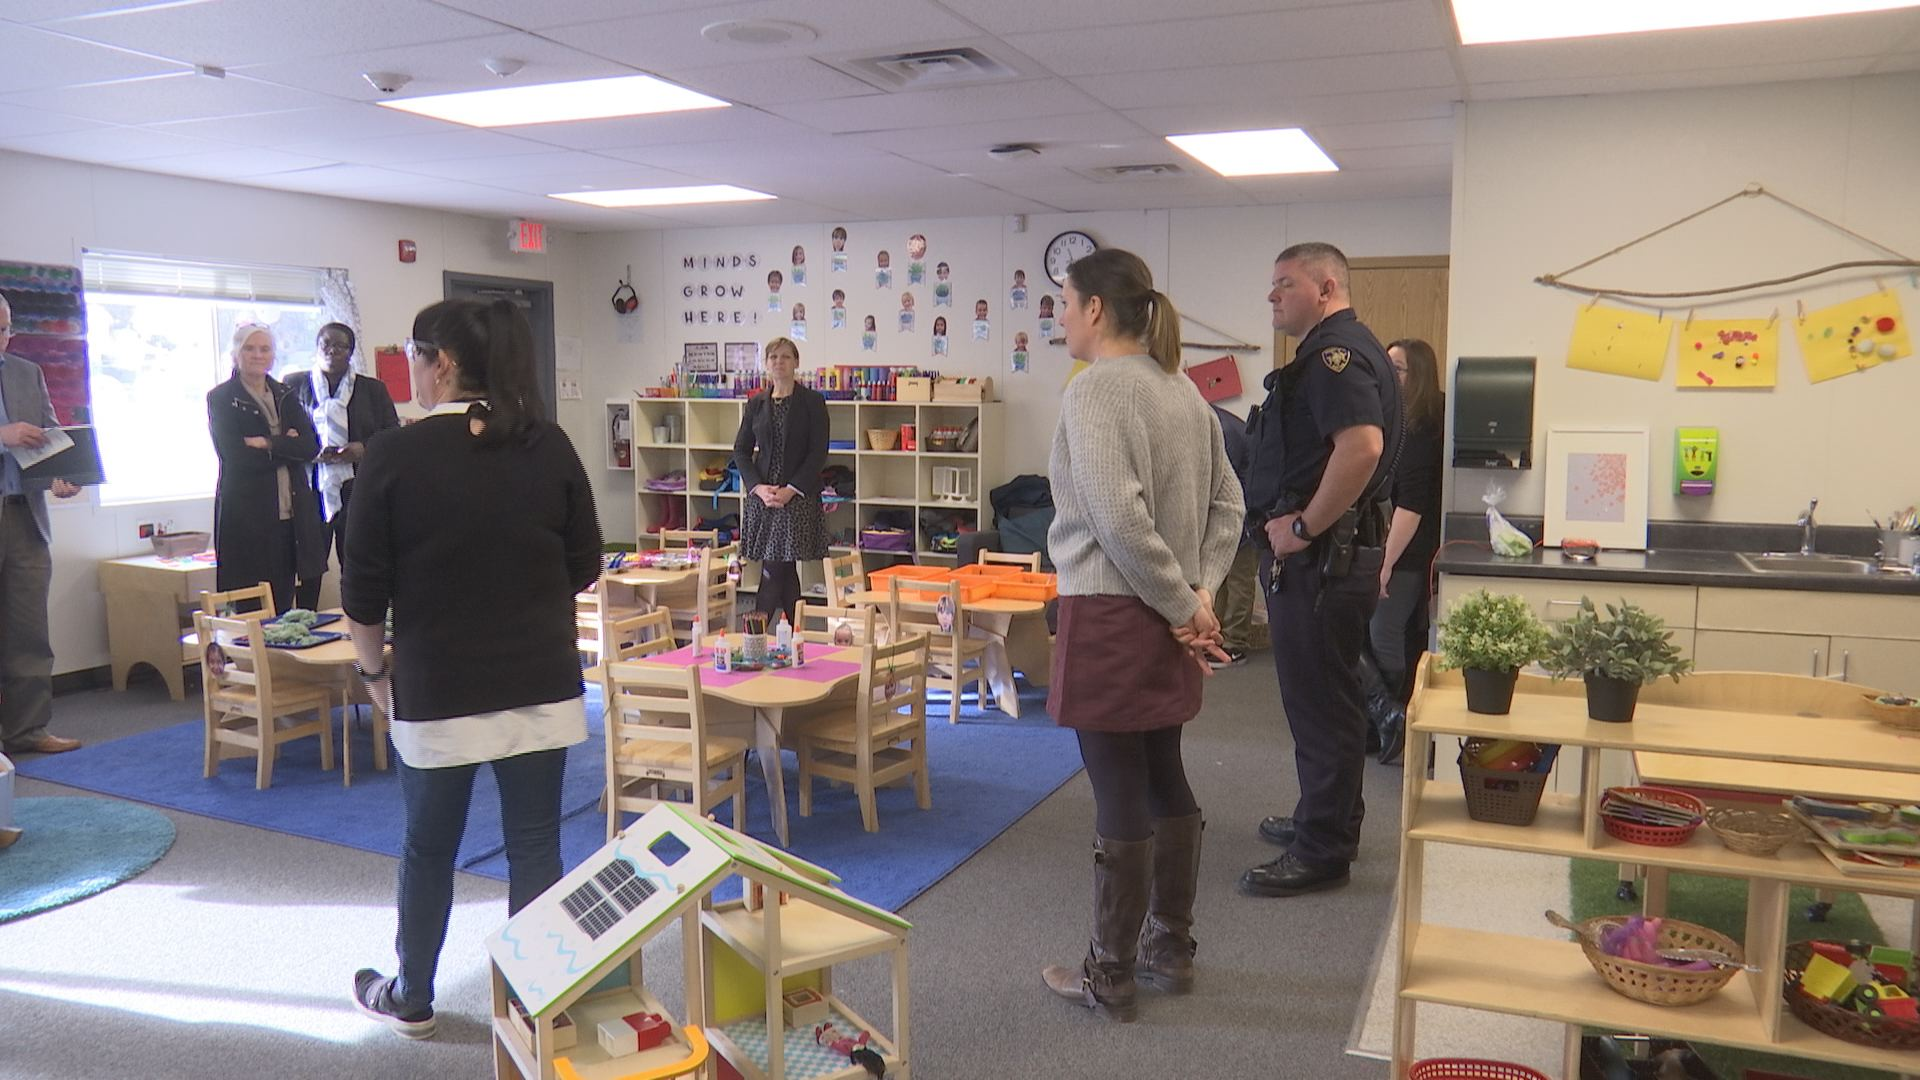 preschools in medford oregon lawmakers tour medford school district to learn about 403